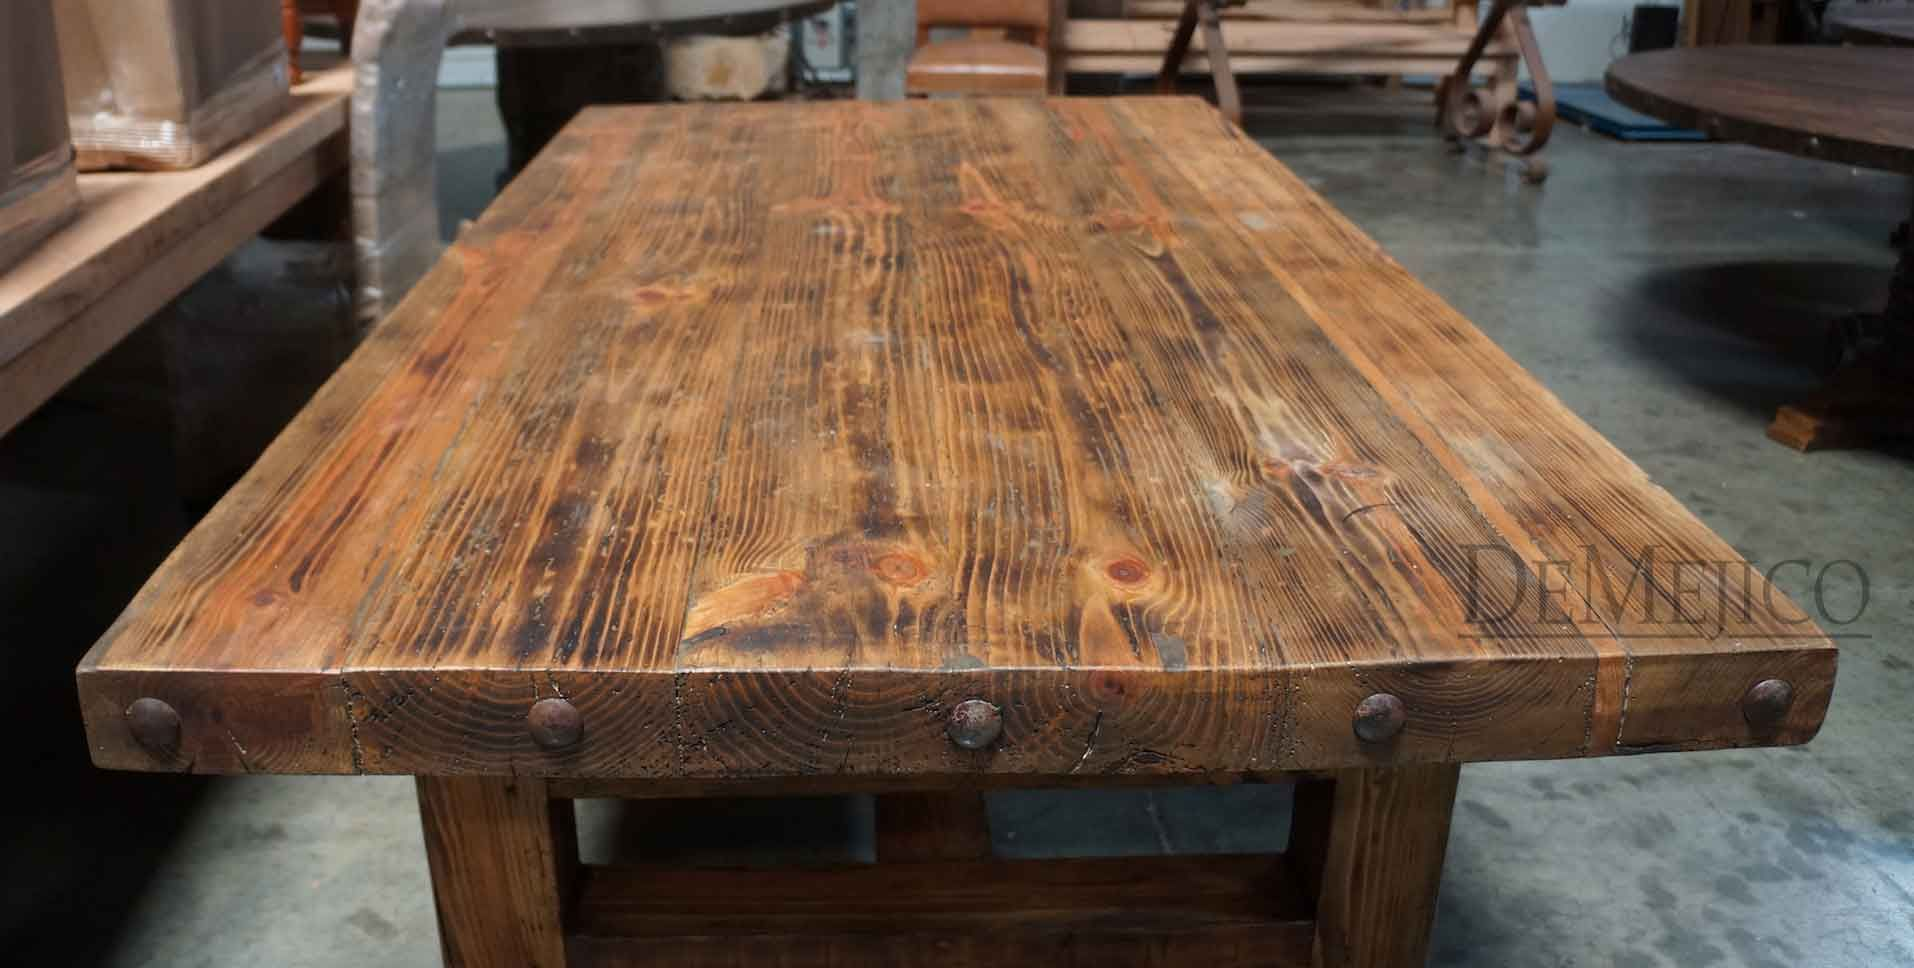 Old Wood Table Demejicodemejico In 2019 Old Wood Table